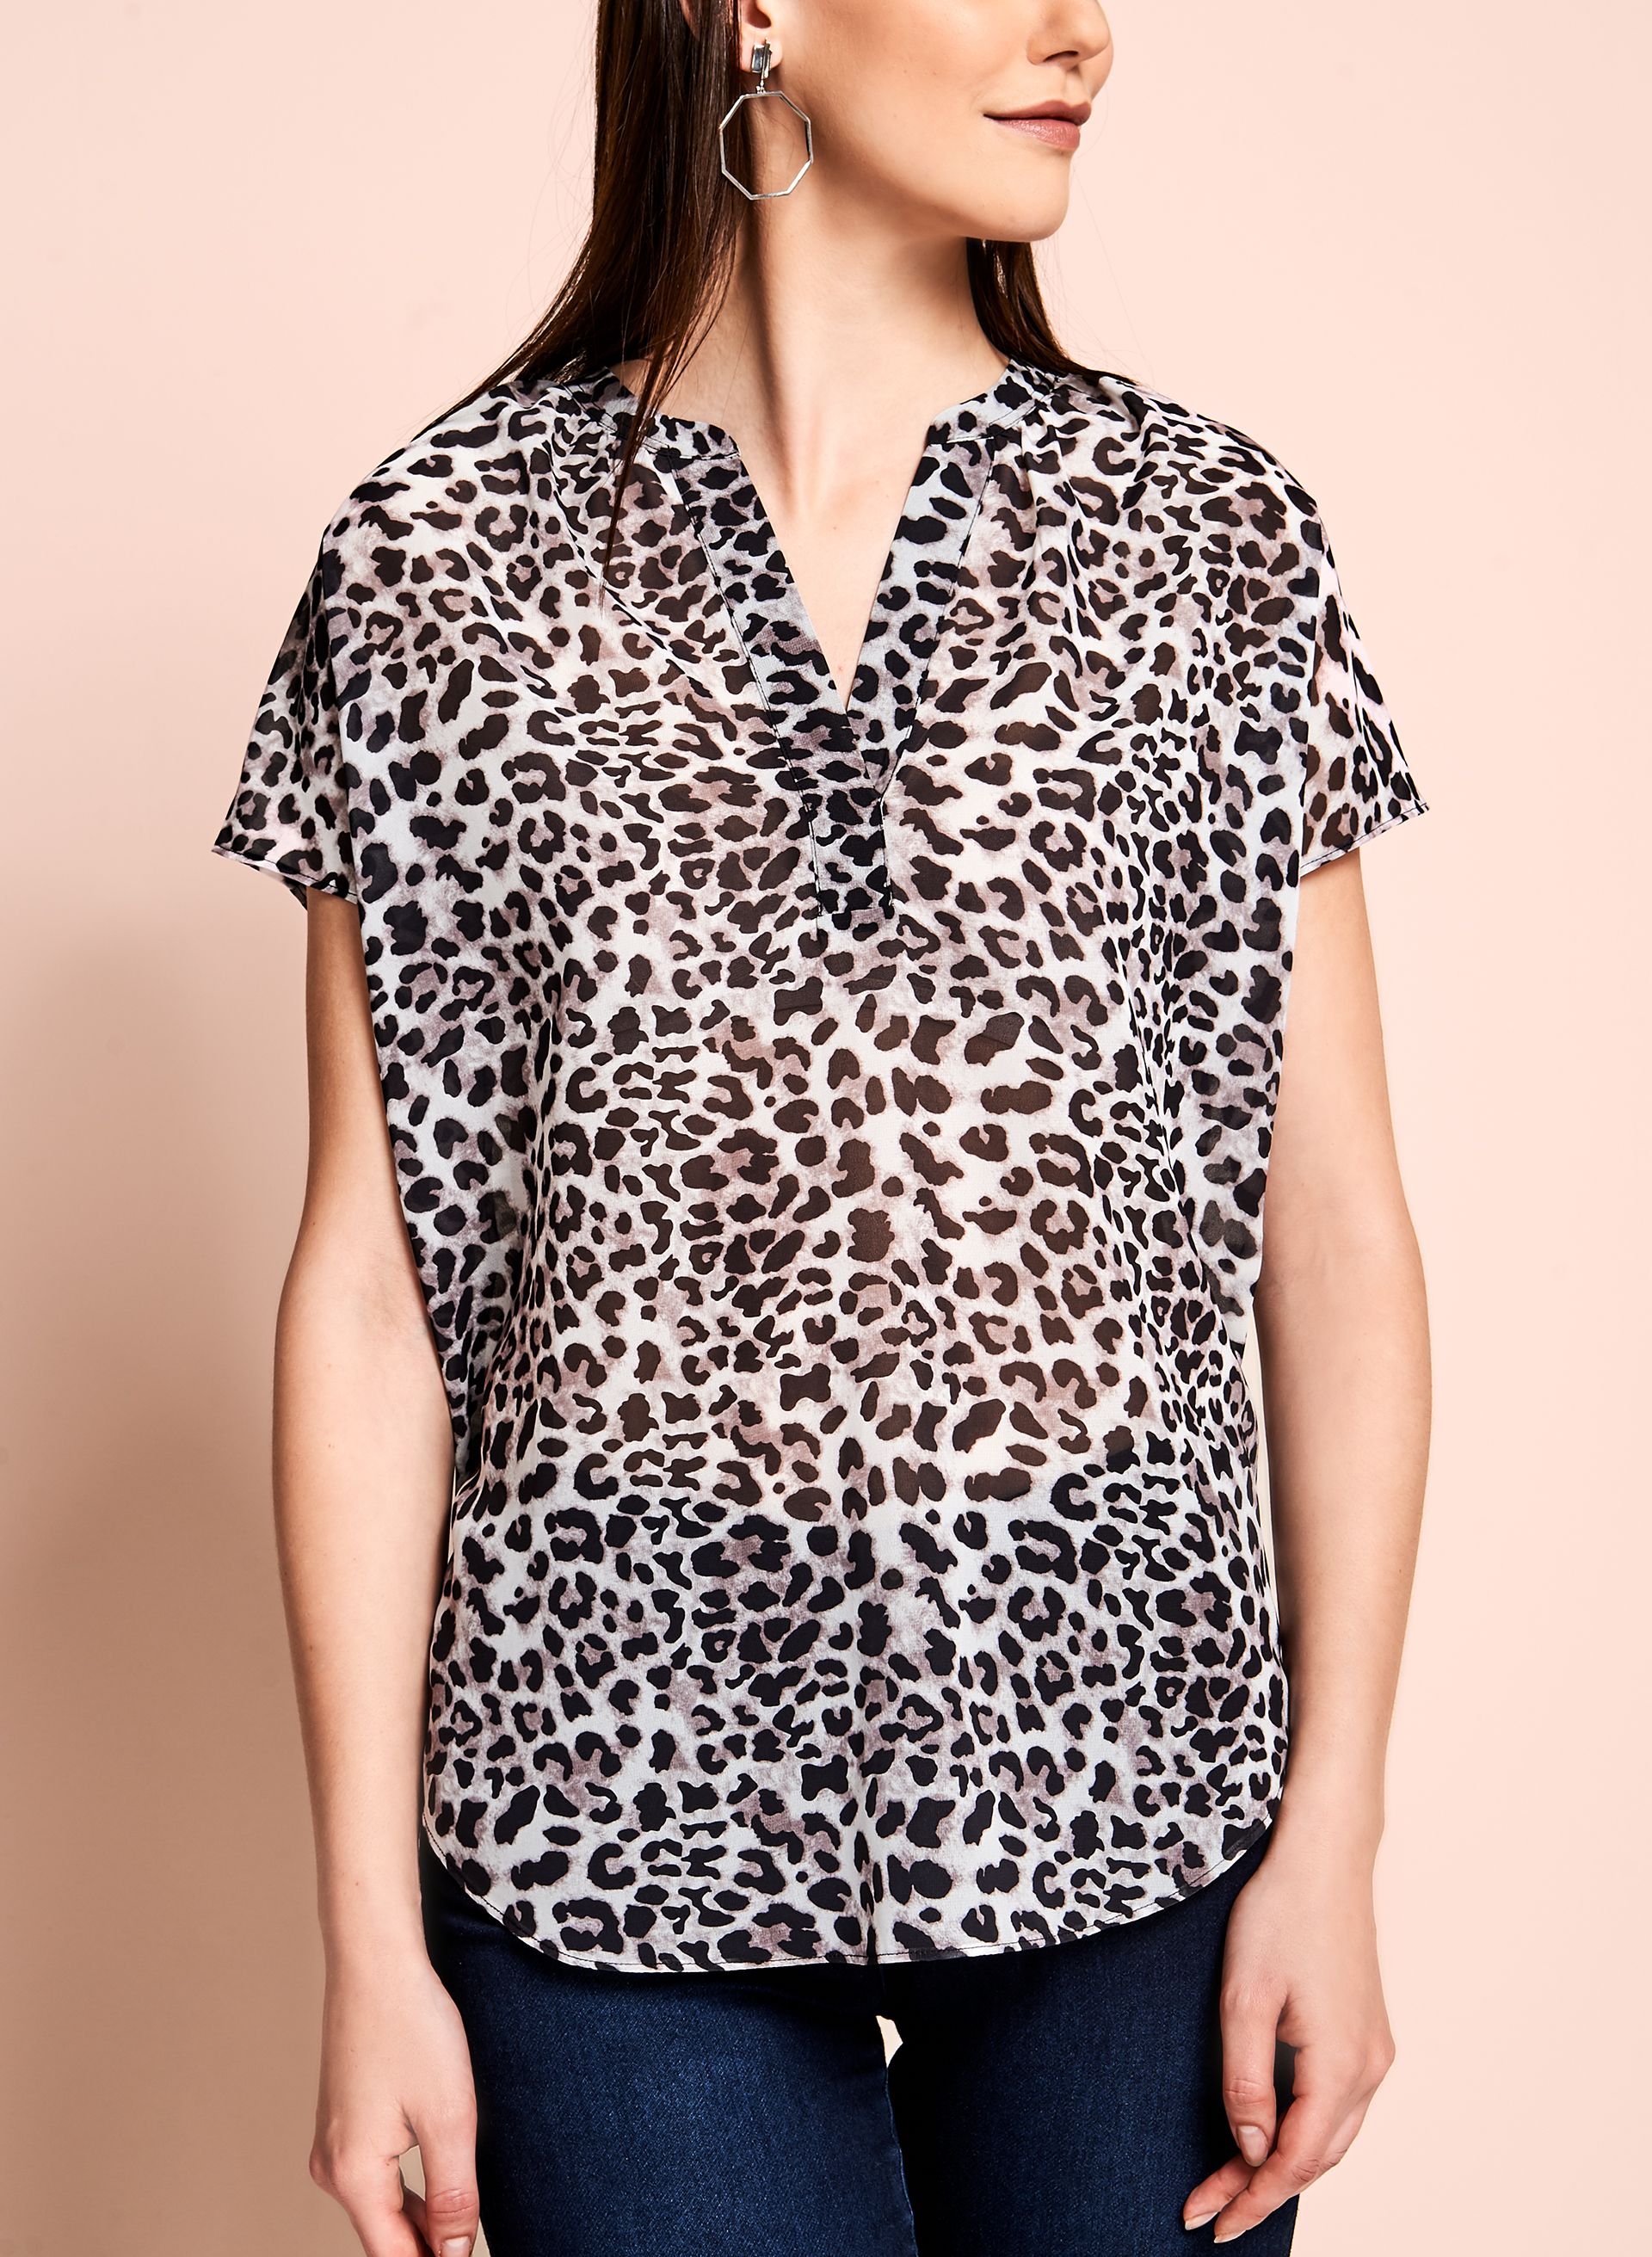 Leopard Print Sheer Blouse, Off White, hi-res